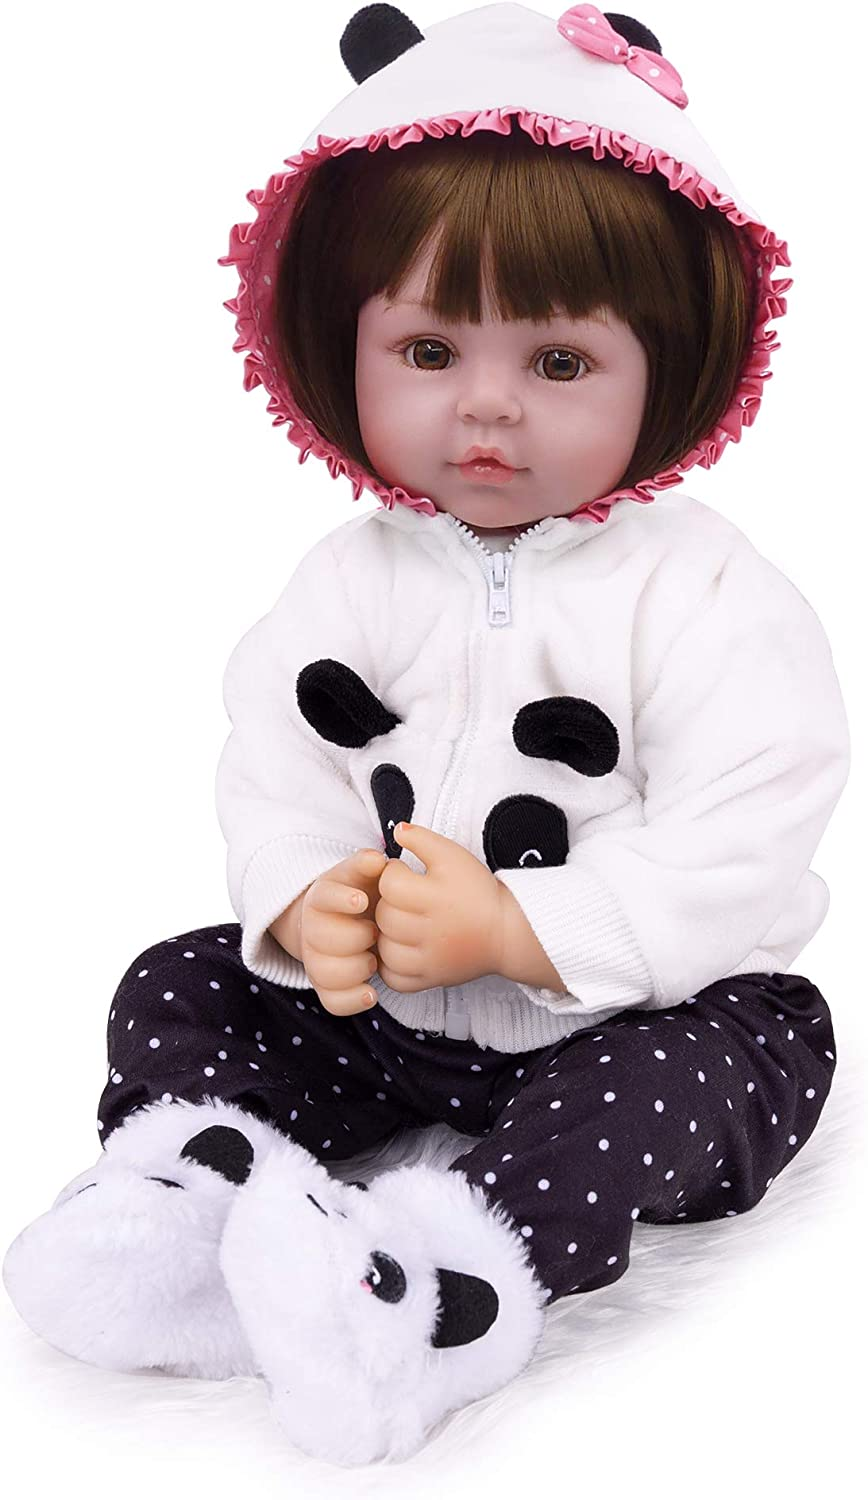 CHAREX 18 Inch Reborn Baby Dolls Adorable Girl Doll Soft Silicone Vinyl Toddler Newborn Reborn Doll for Age 3+